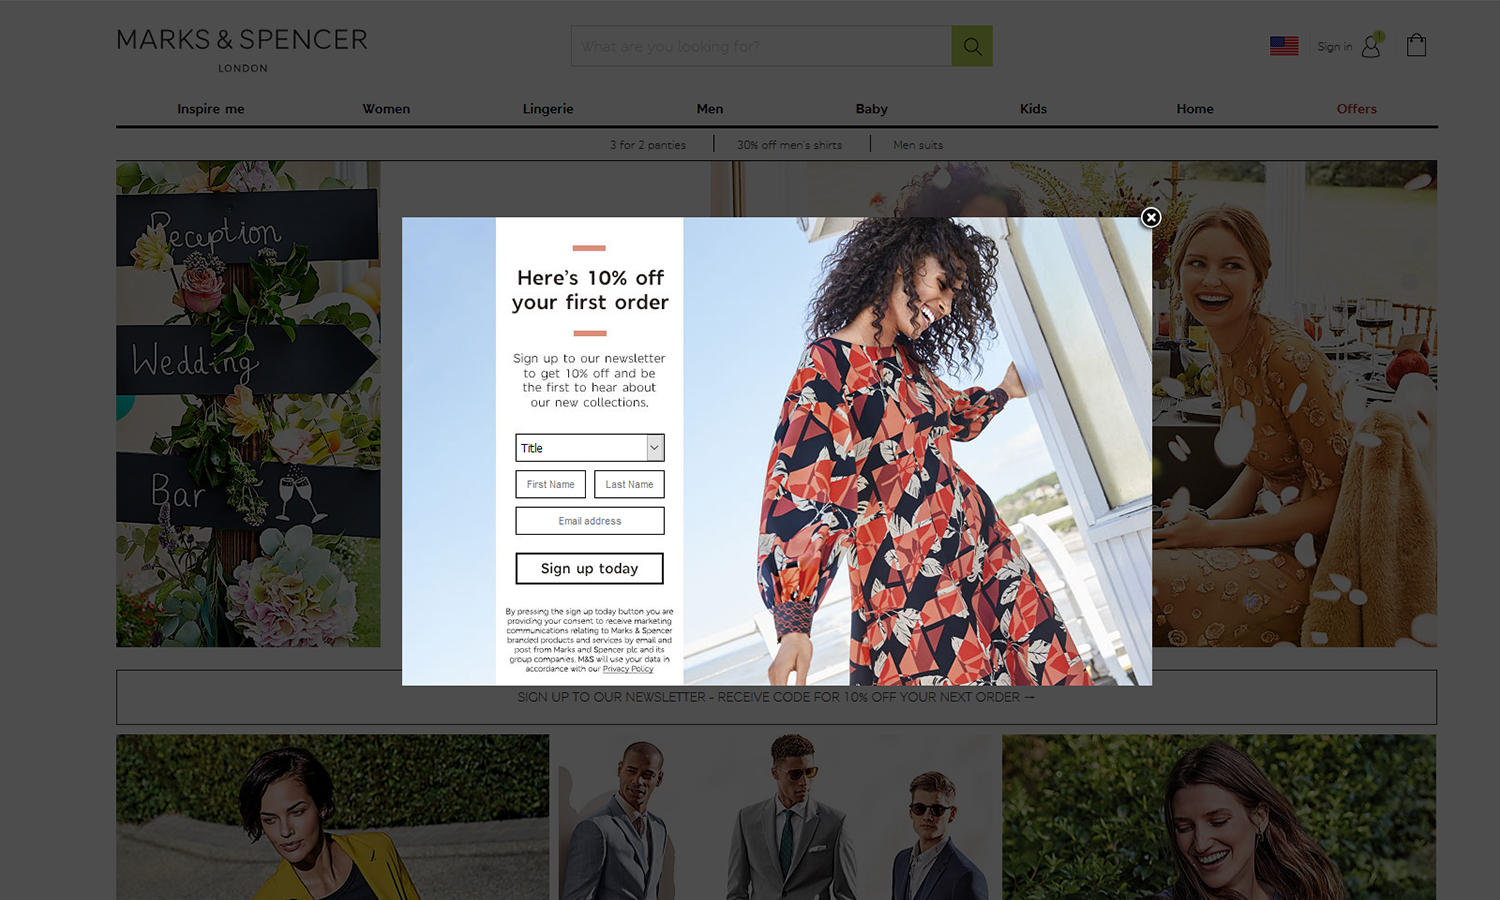 Marks and Spencer's opt-in pop-up